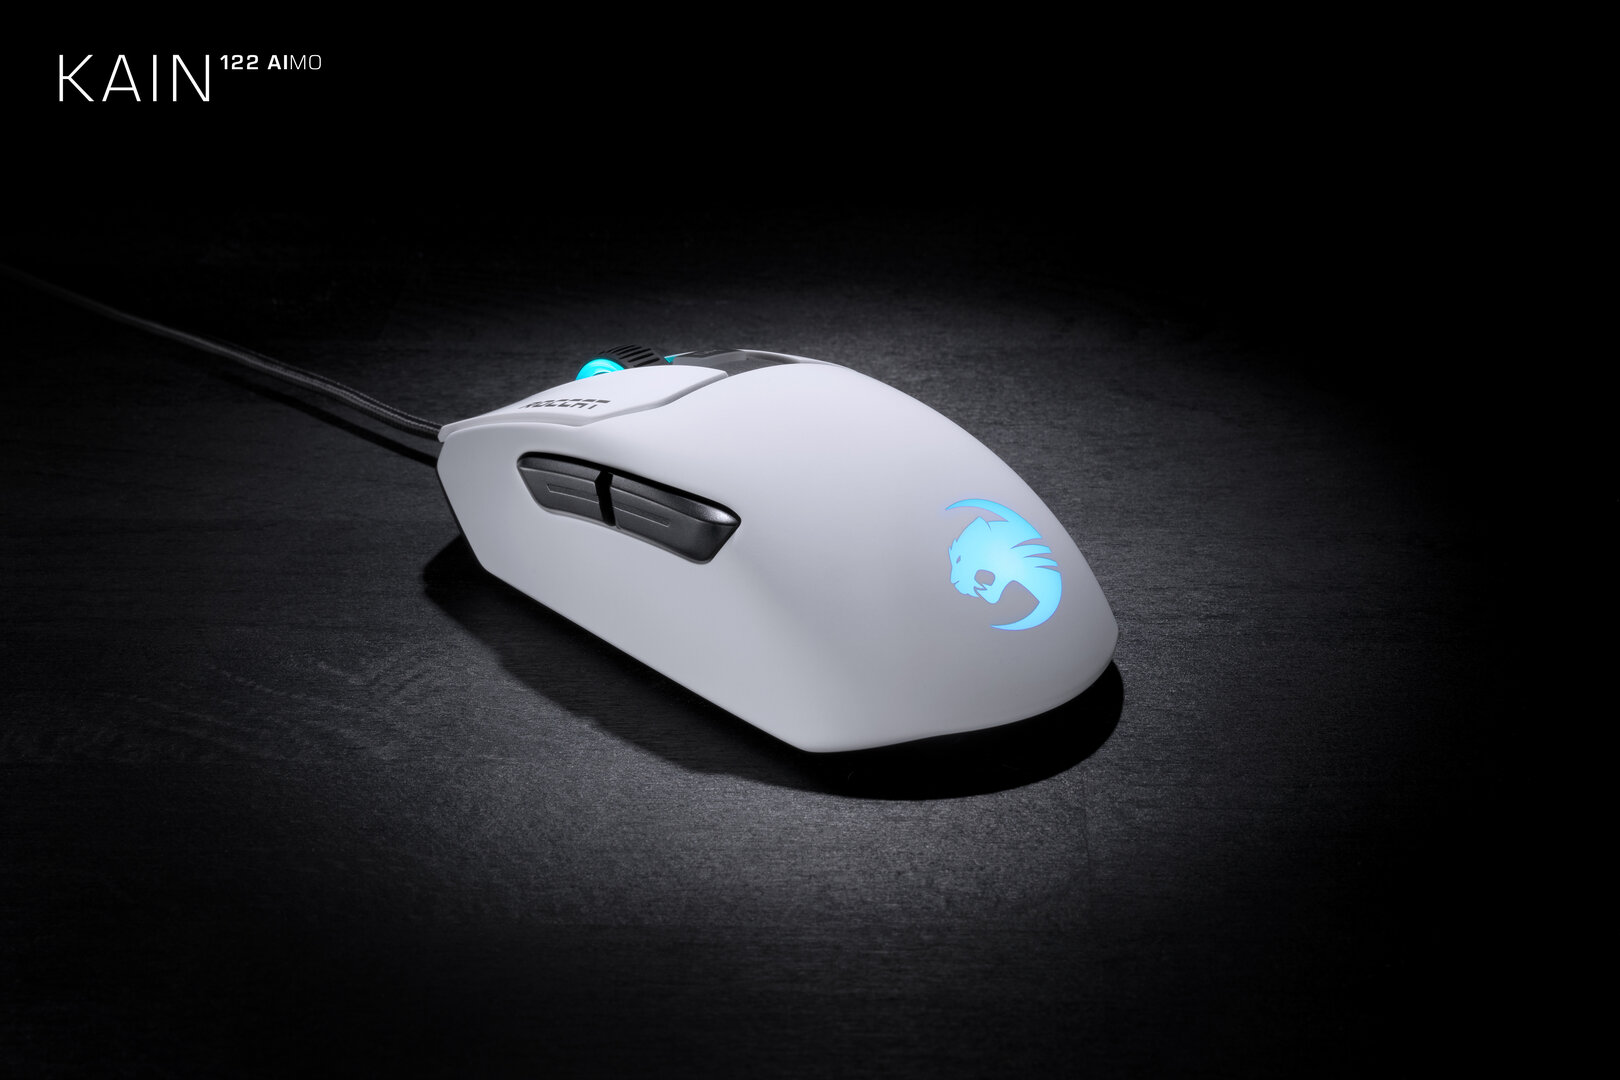 Roccat Kain 122 Aimo